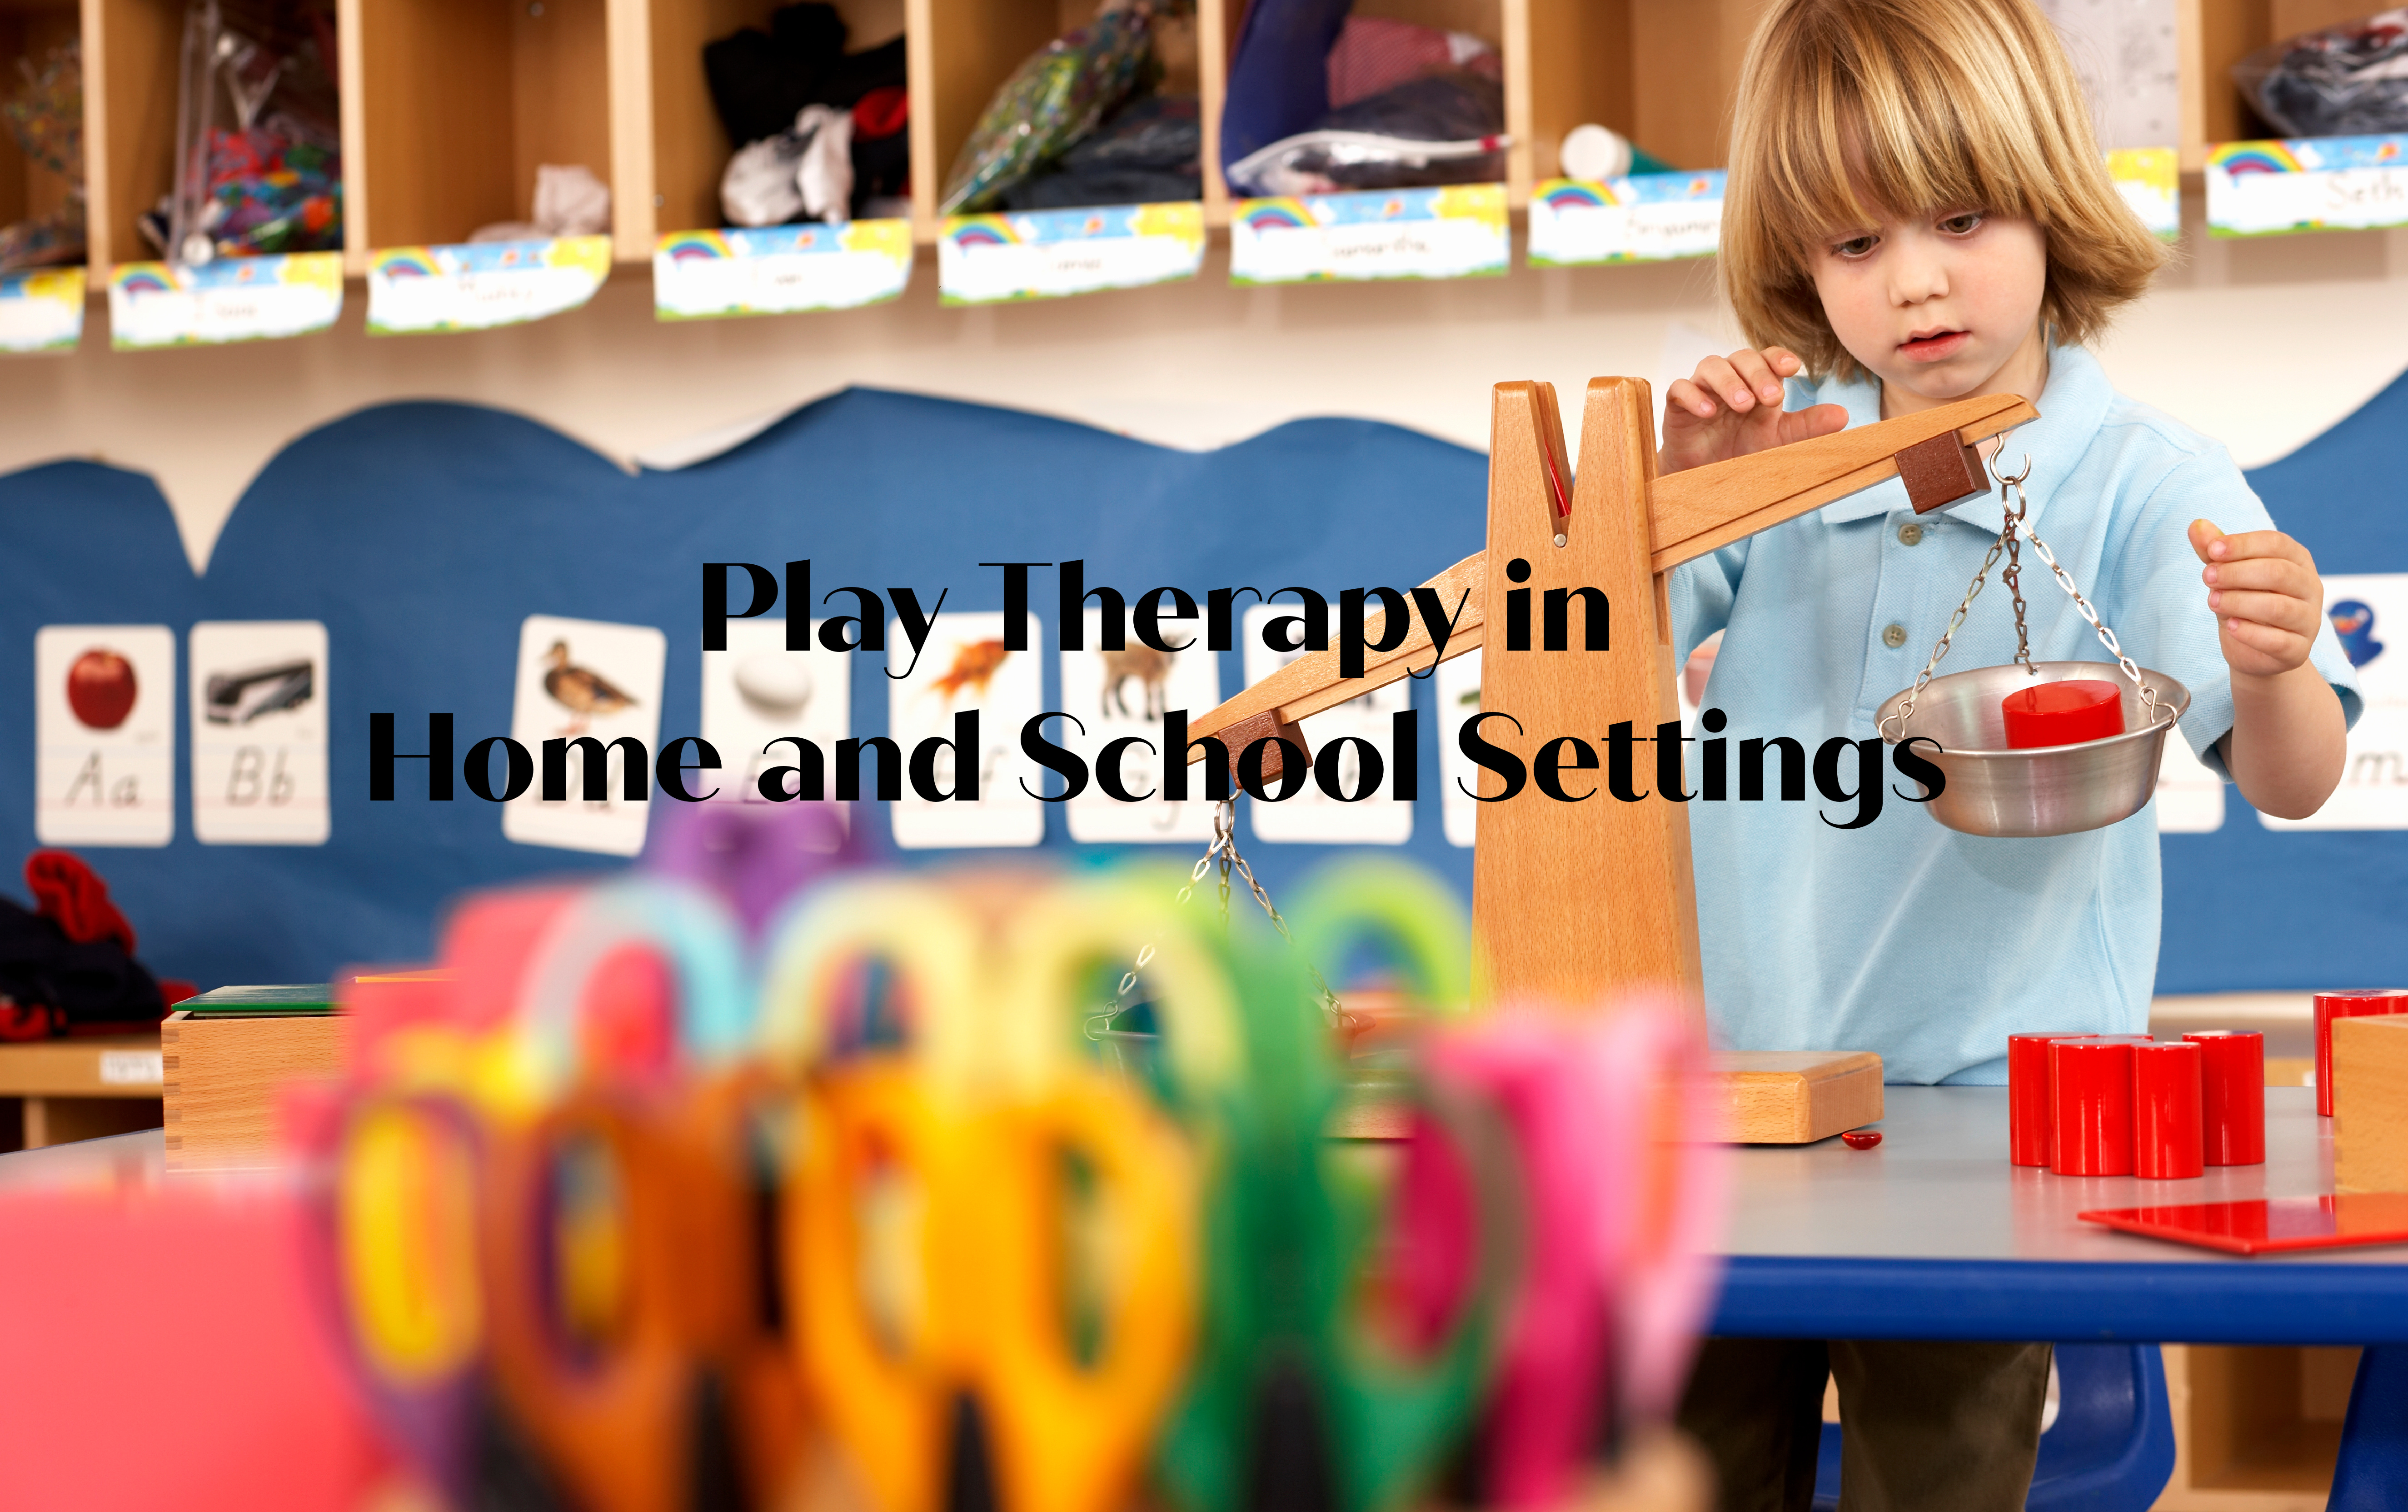 play therapy in home and school settings